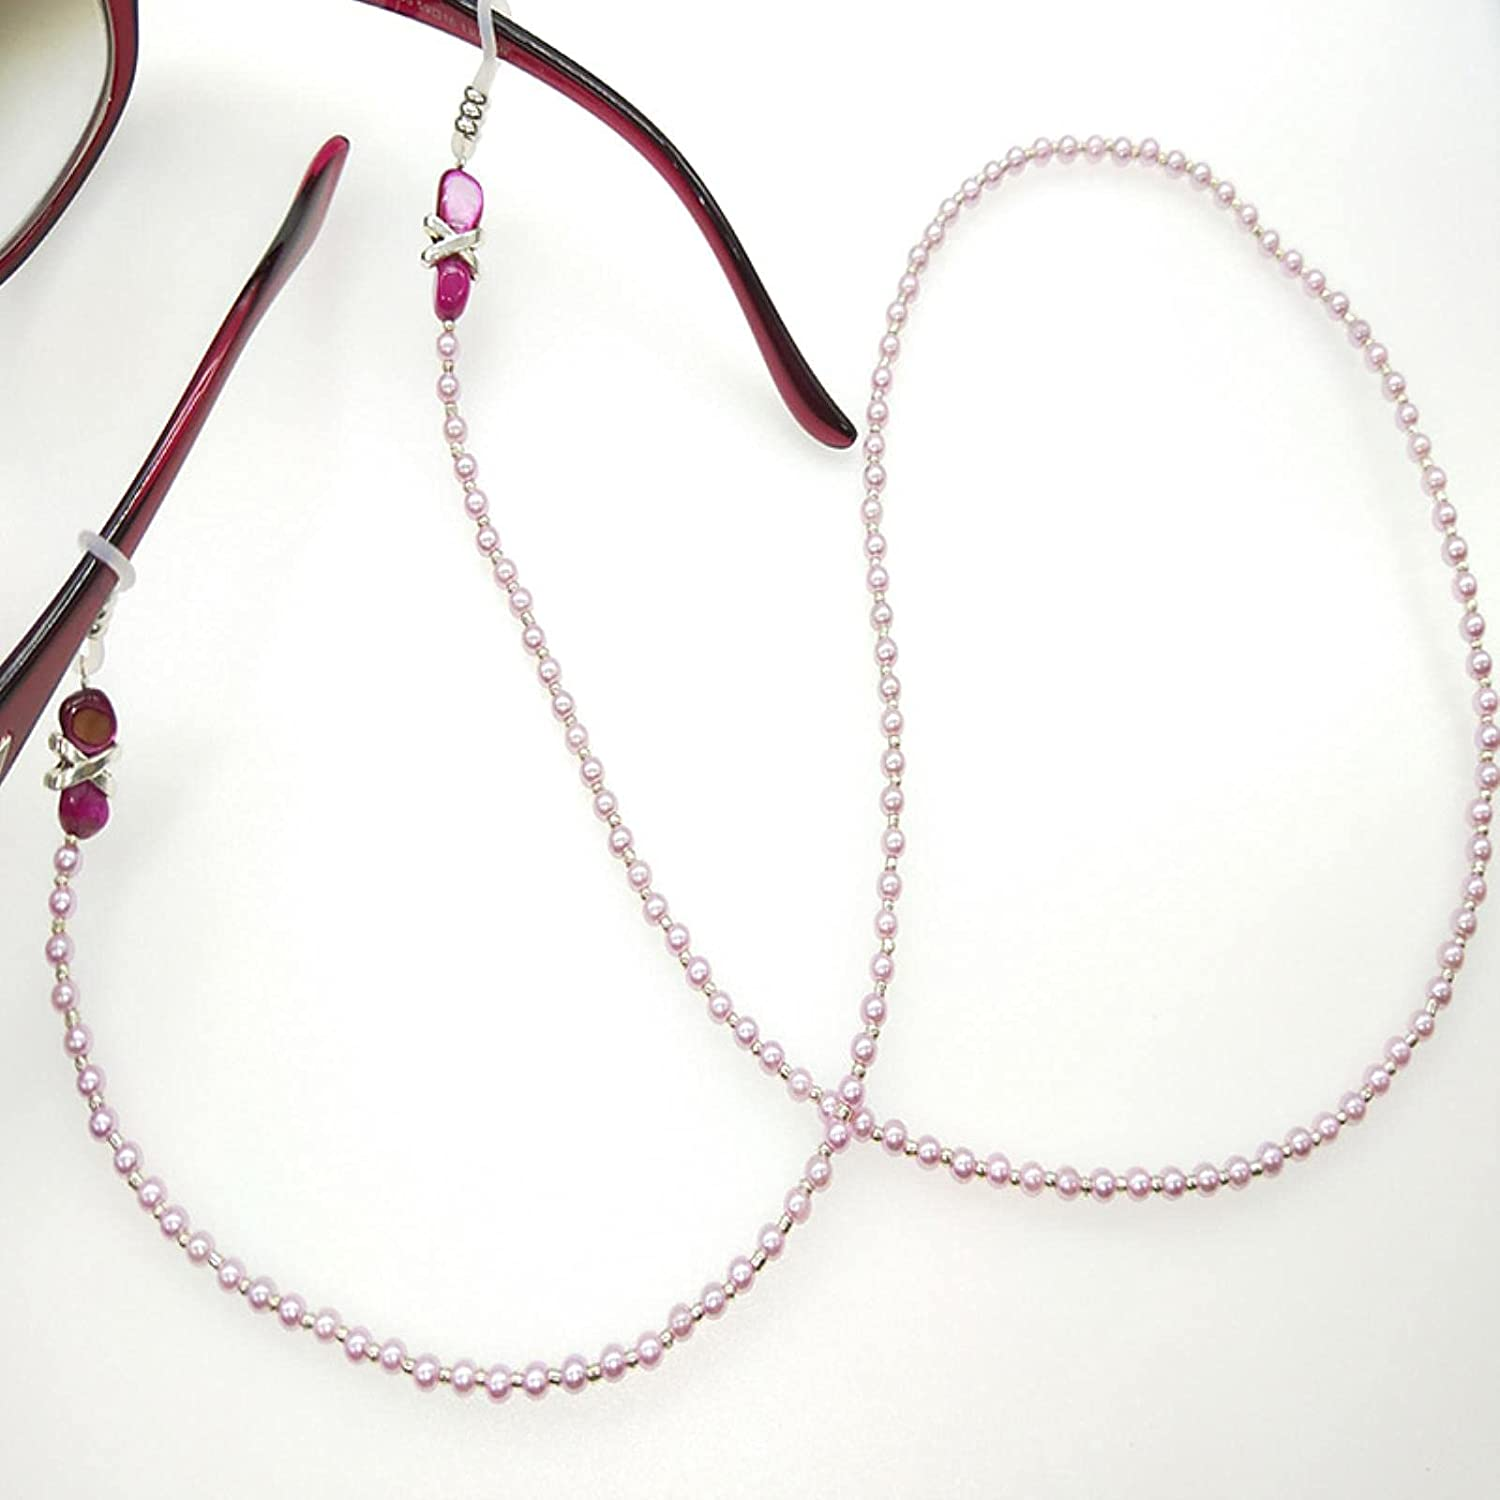 Wsnld Reading Glasses Chain for Women Elegant Pearl Cords Sunglasses Strap HIC Eyeglass Jewelry Accessories